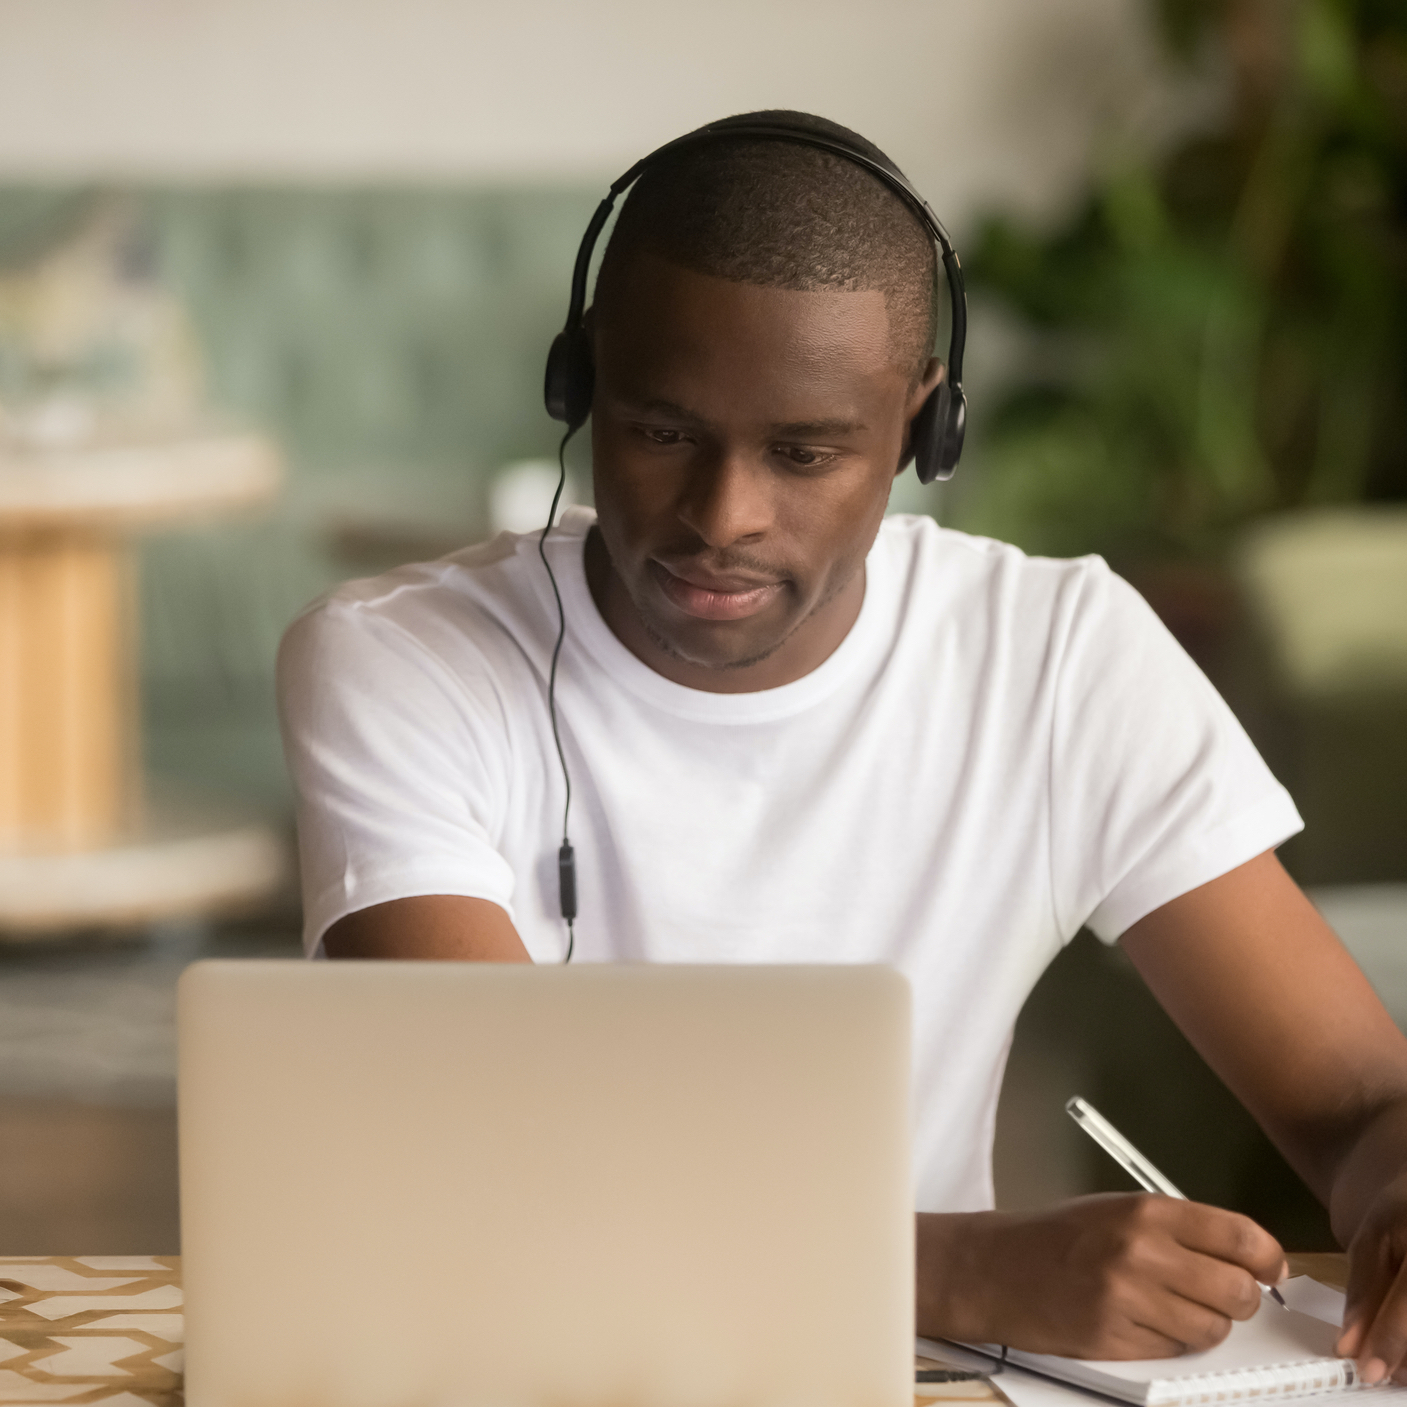 Five Benefits of Online Islamic Learning